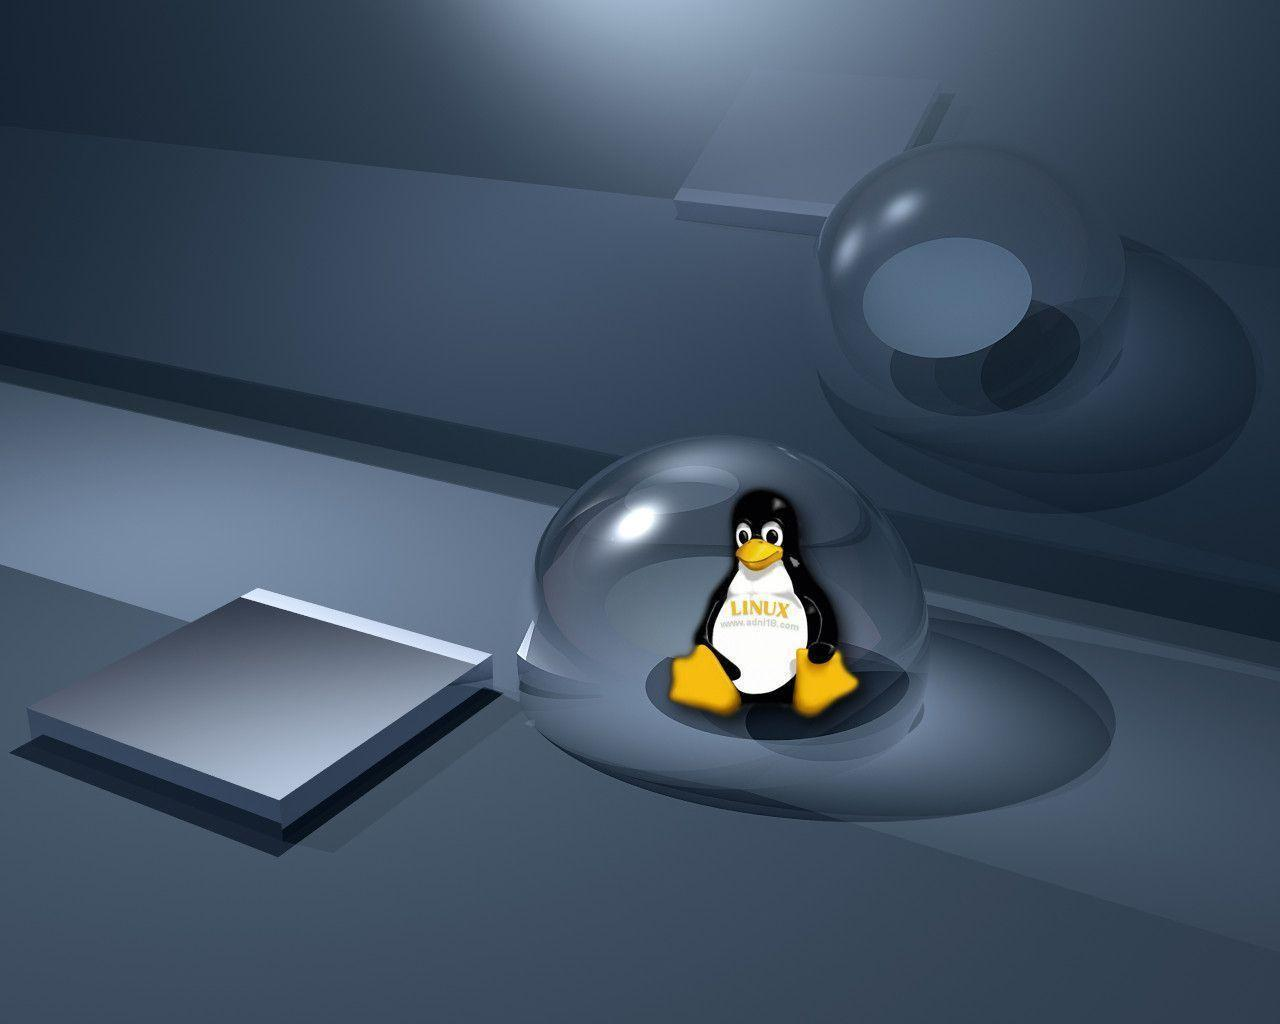 Linux wallpapers ~ Wallpapers Idol